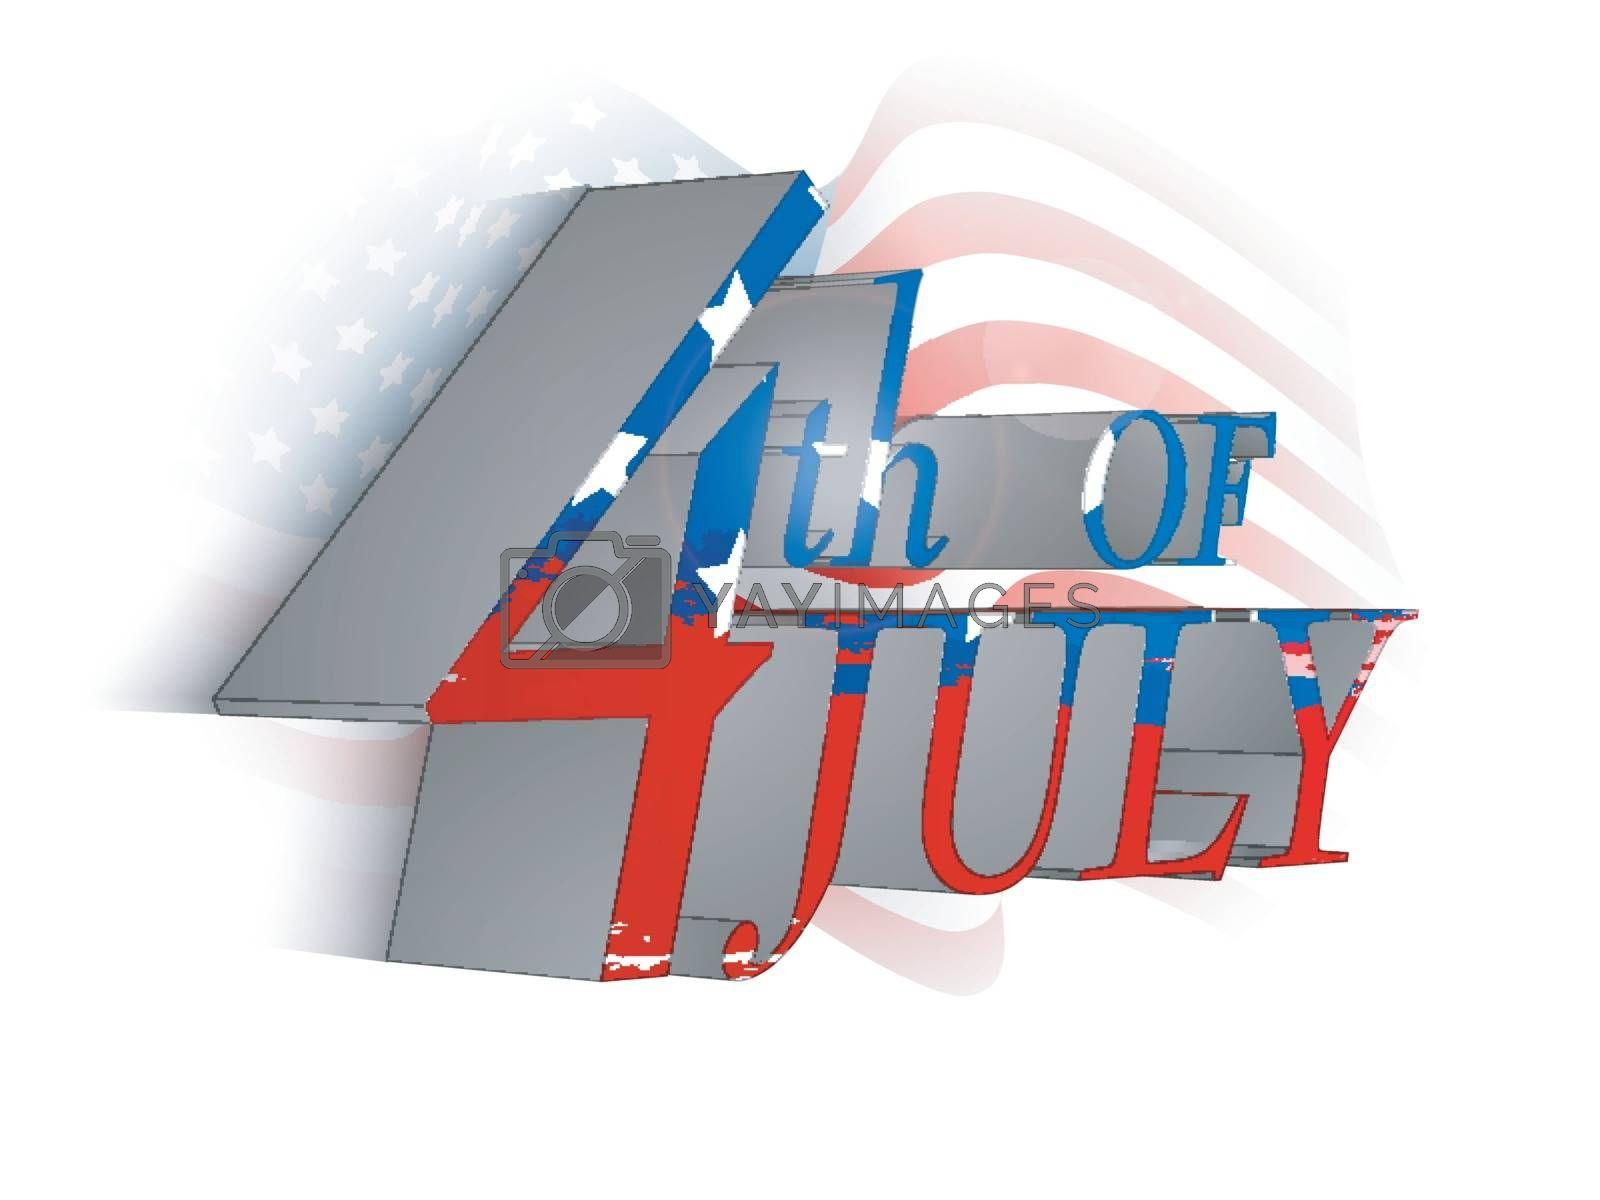 Creative 3D 4th of July Text Design on waving American Flag background for Independence Day celebration.